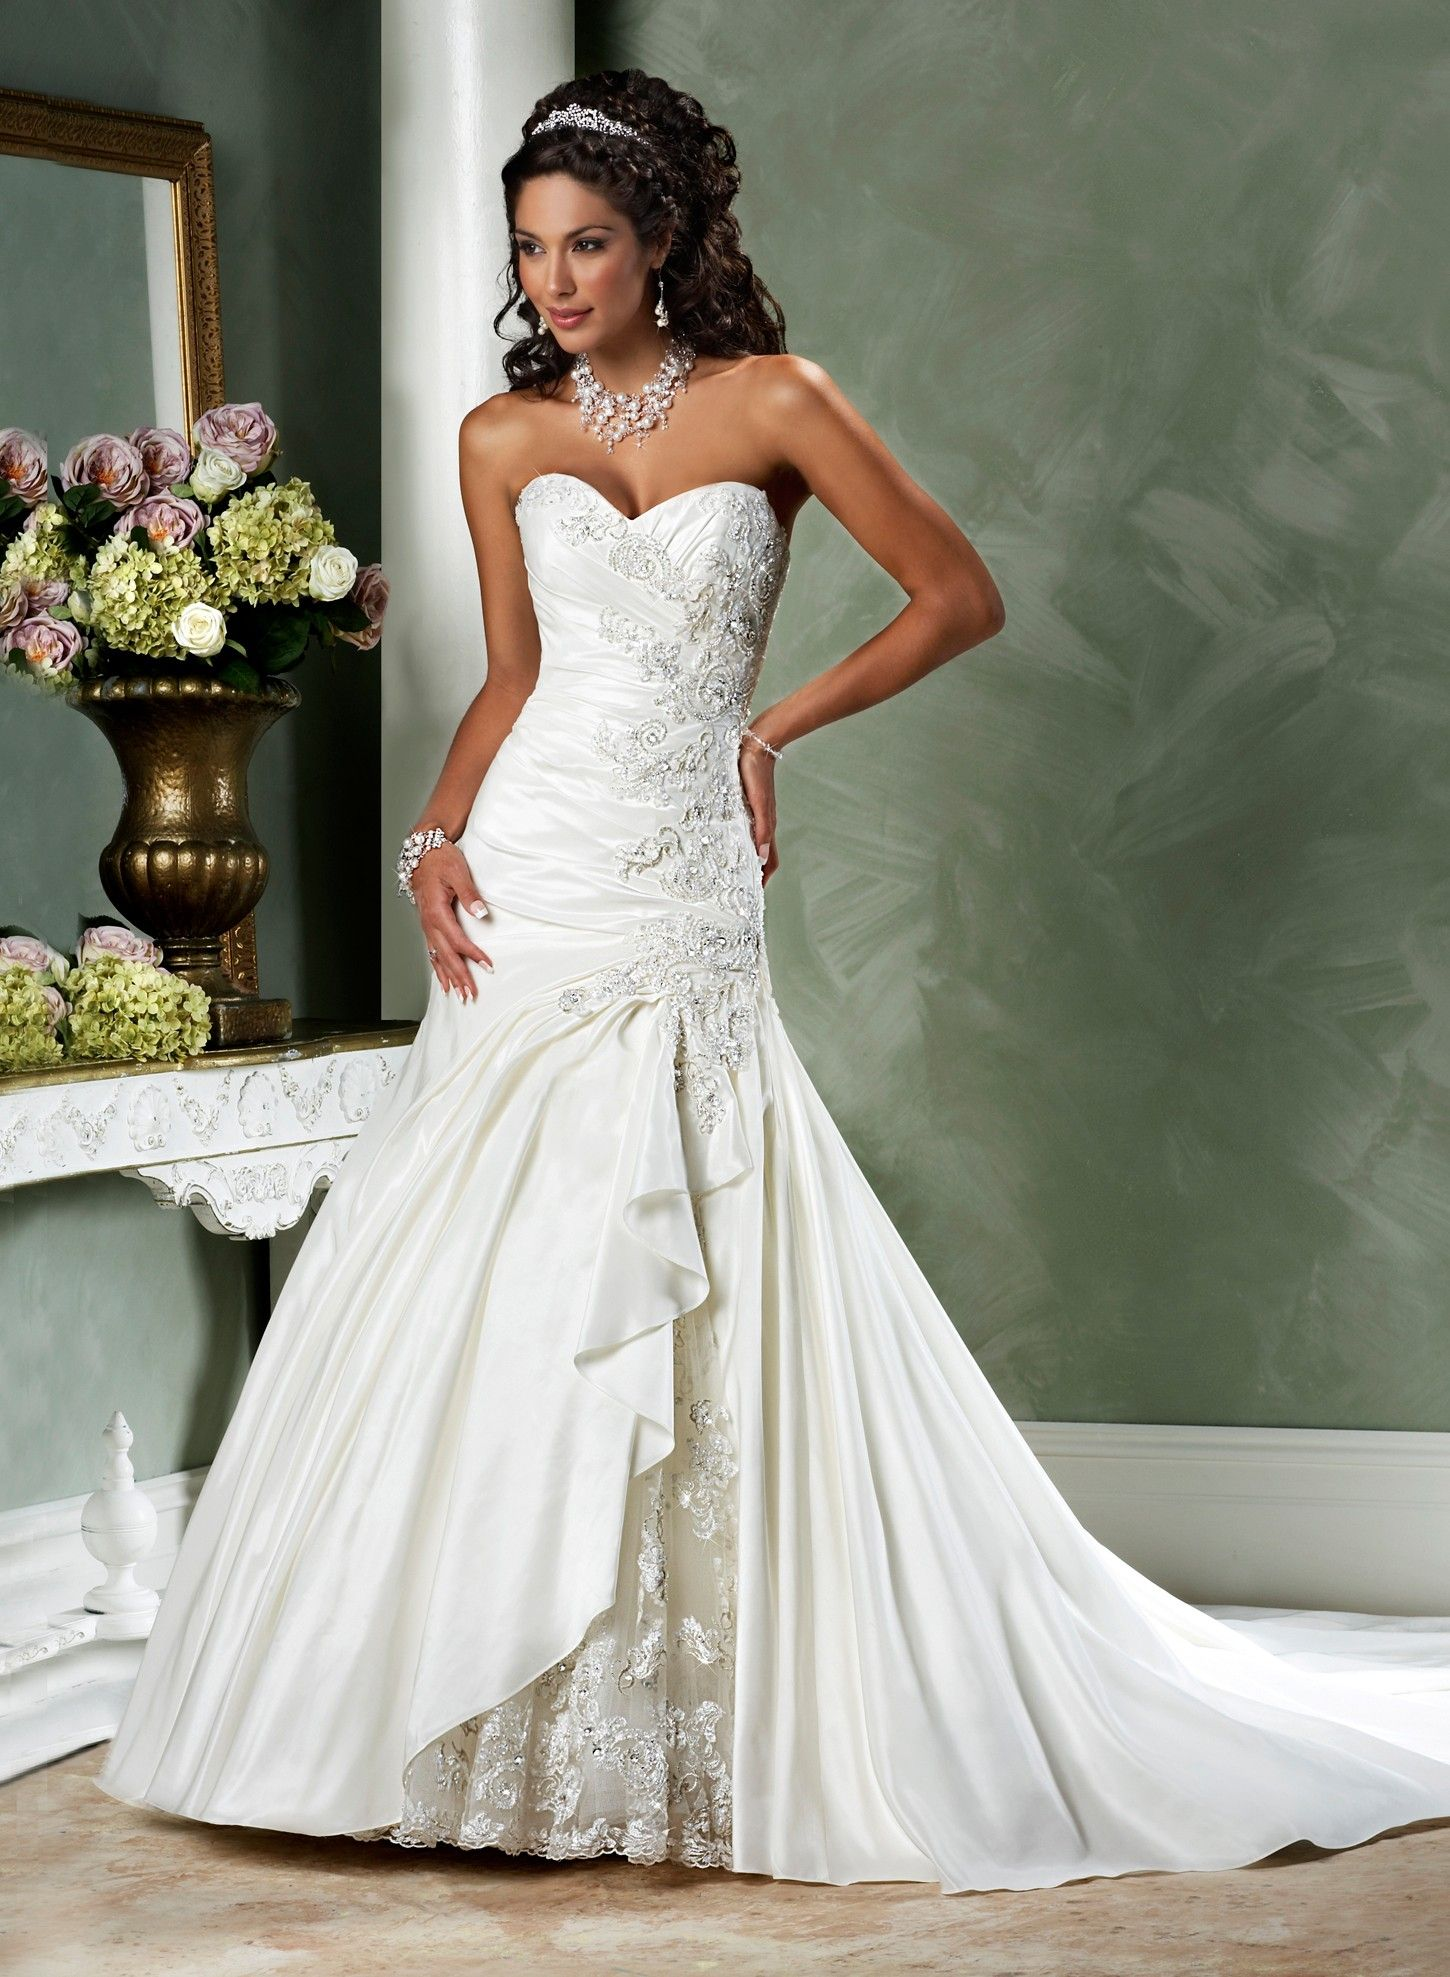 sweetheart wedding dresses Wedding dress with jewelry ball lace designs sweetheart shape